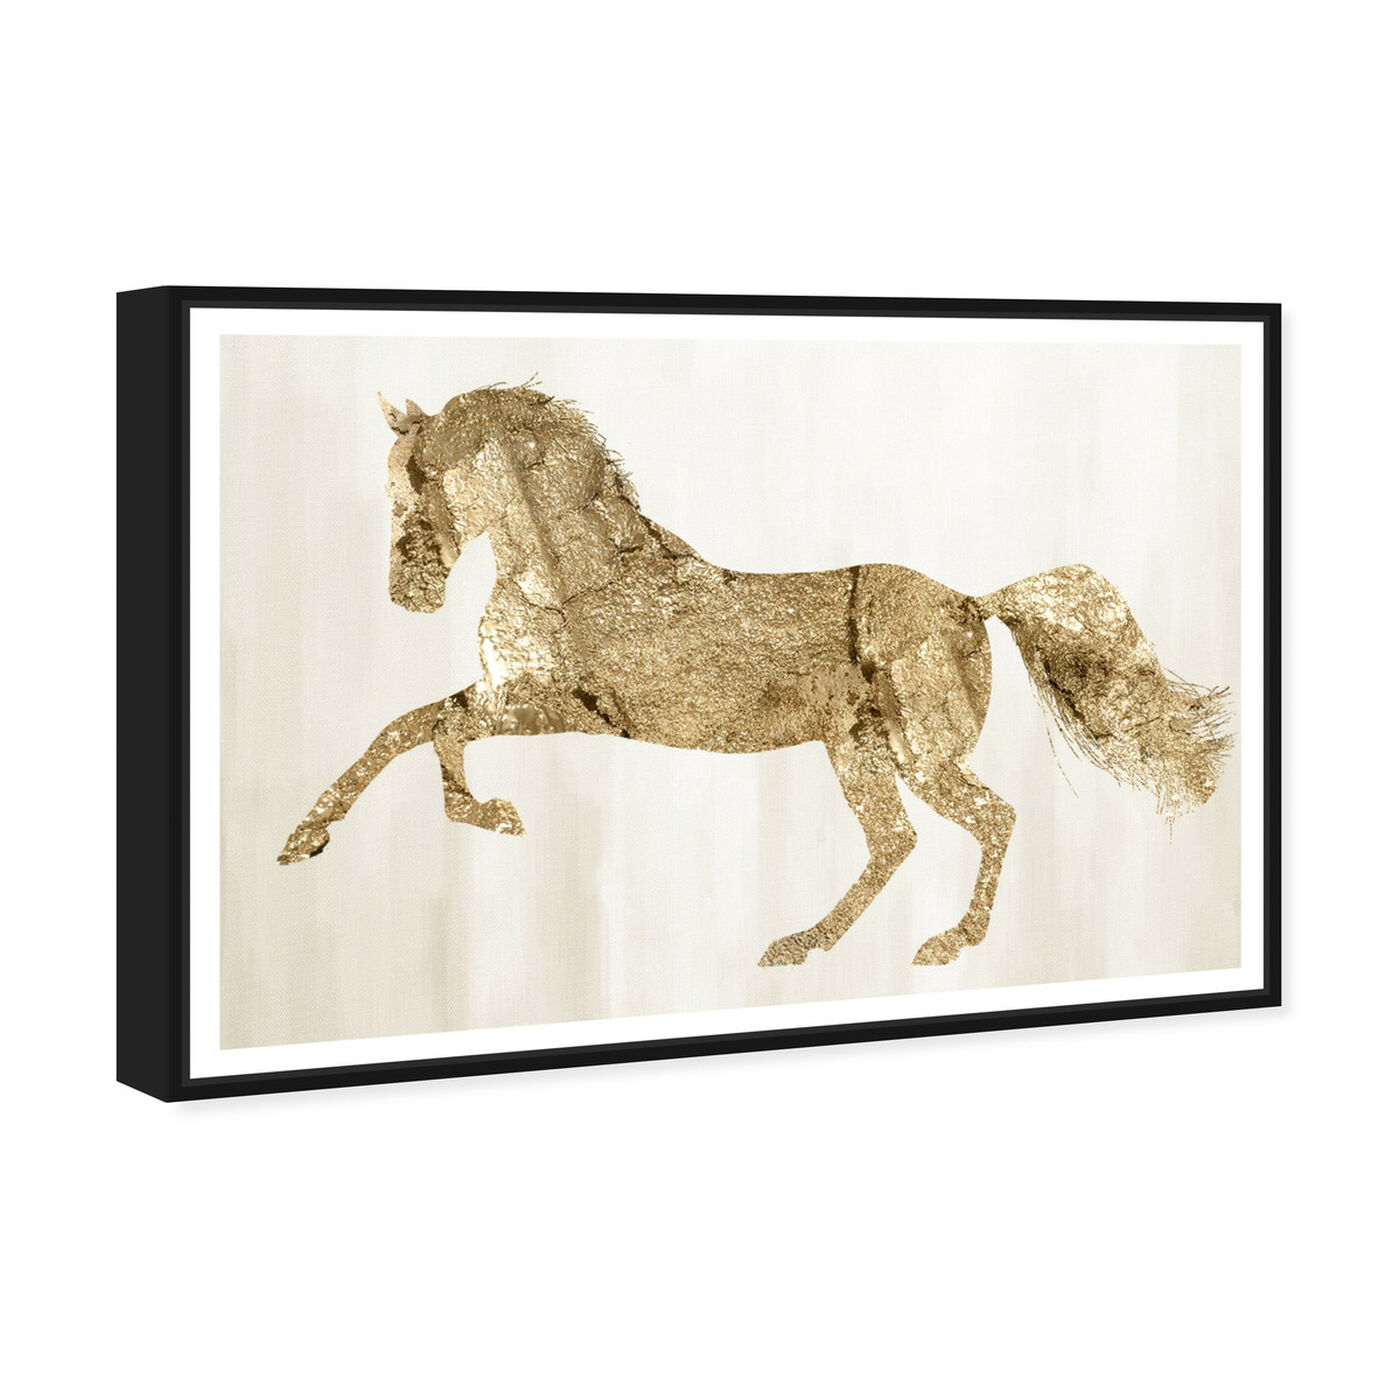 Angled view of Gold Wild and Free featuring animals and farm animals art.